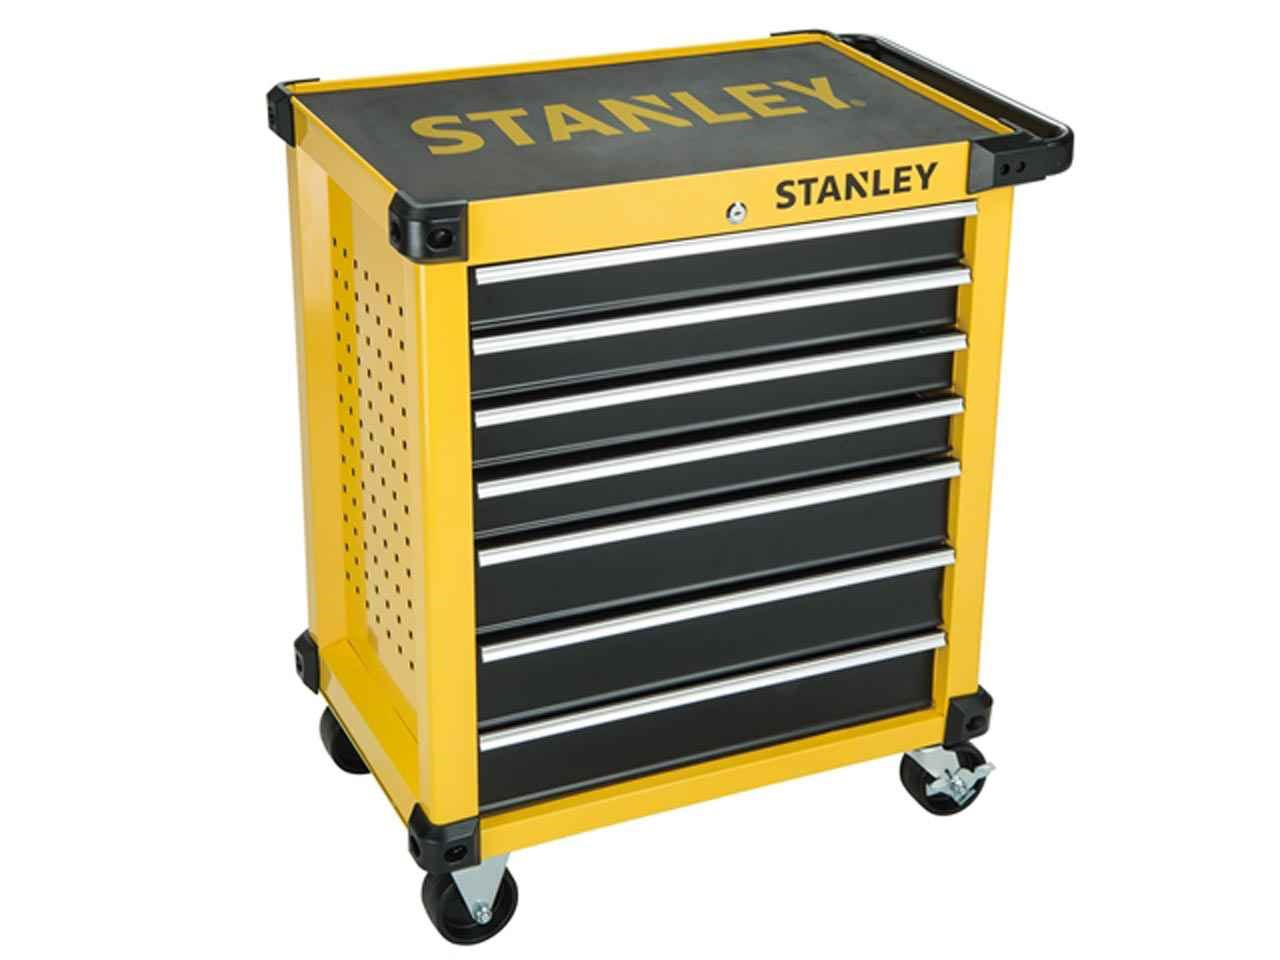 Stanley Sta174306 27in Roller Cabinet 7 Drawer